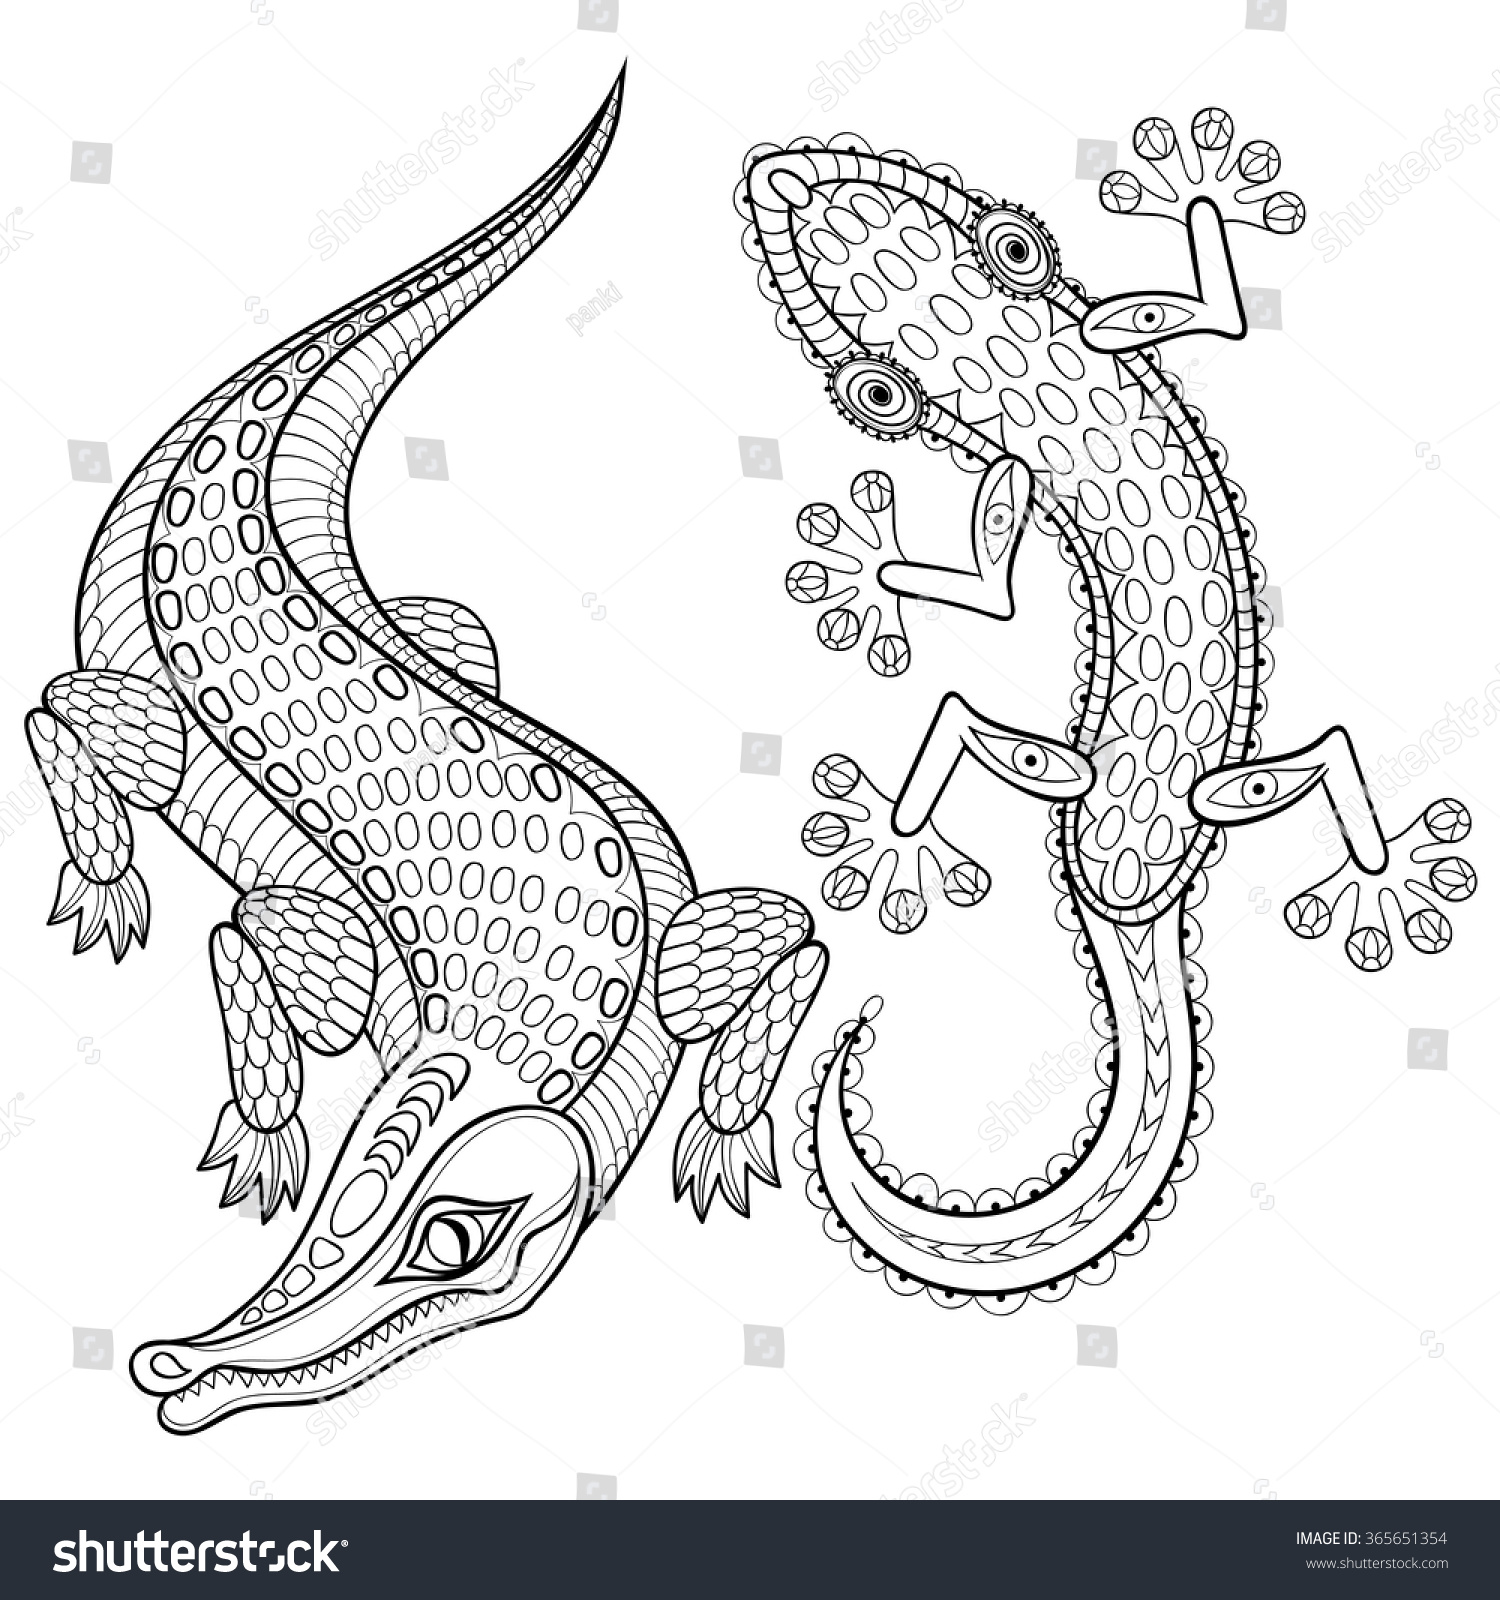 Lizard Adult Coloring Page